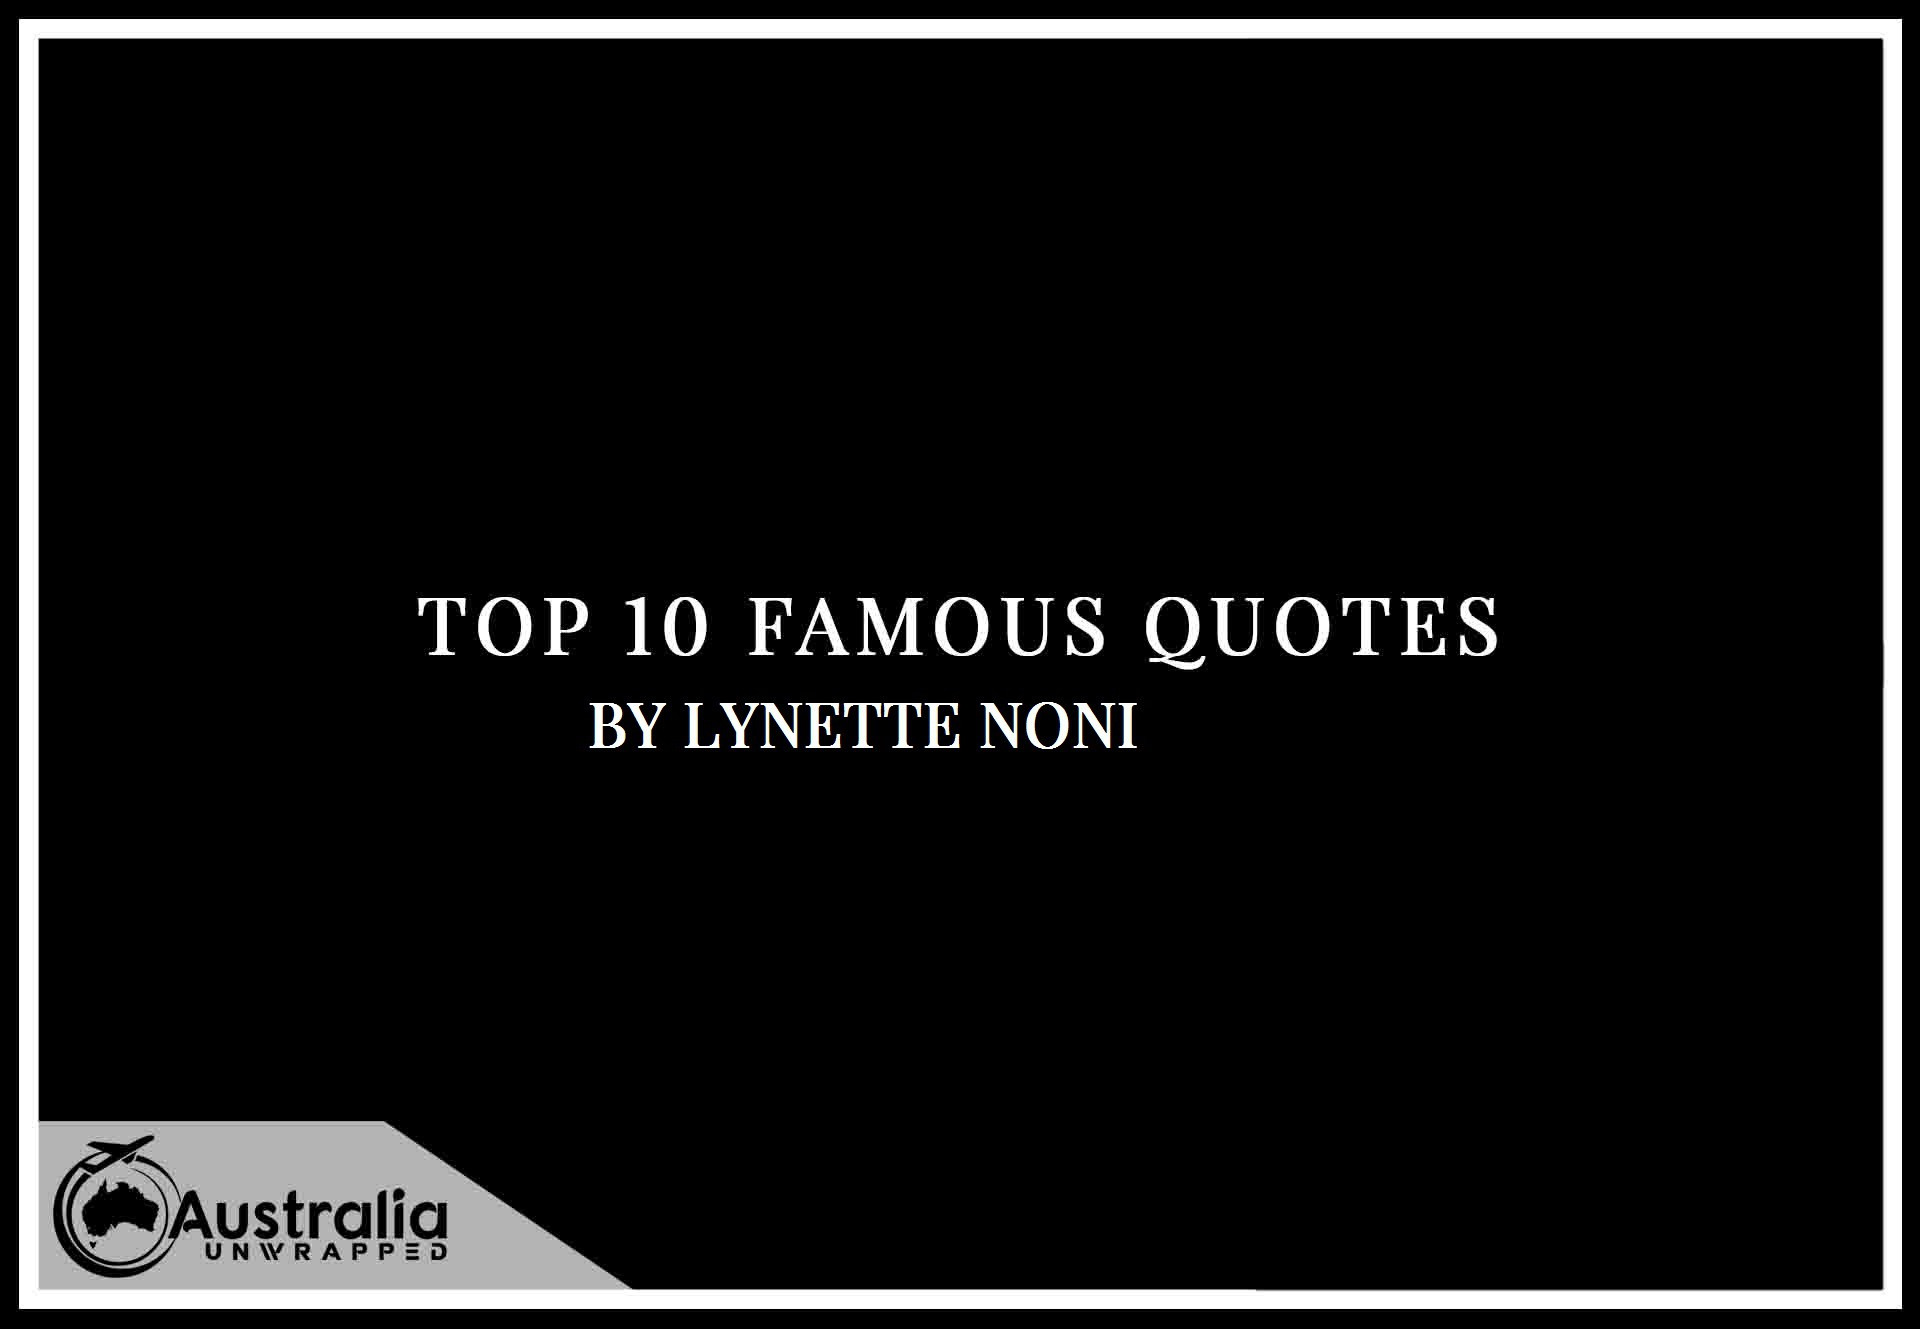 Lynette Noni's Top 10 Popular and Famous Quotes